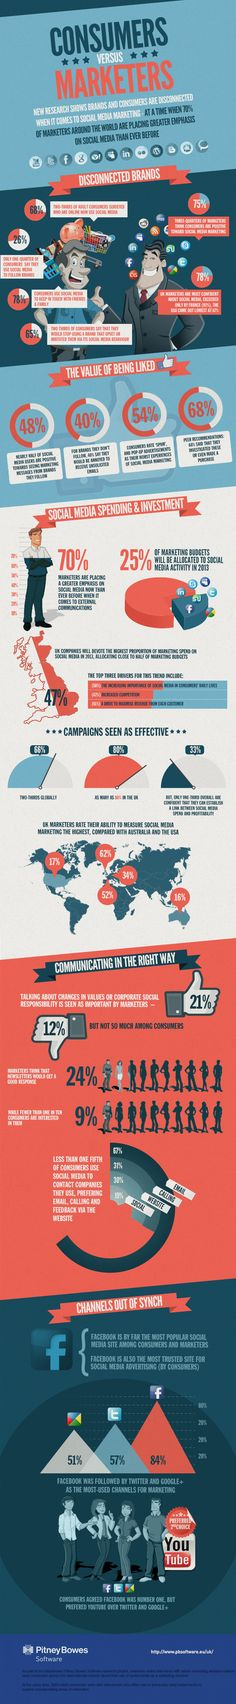 Consumers Vs Marketers – What Do We Really Want From Brands On Social Media? #infographic #brands #socialmedia